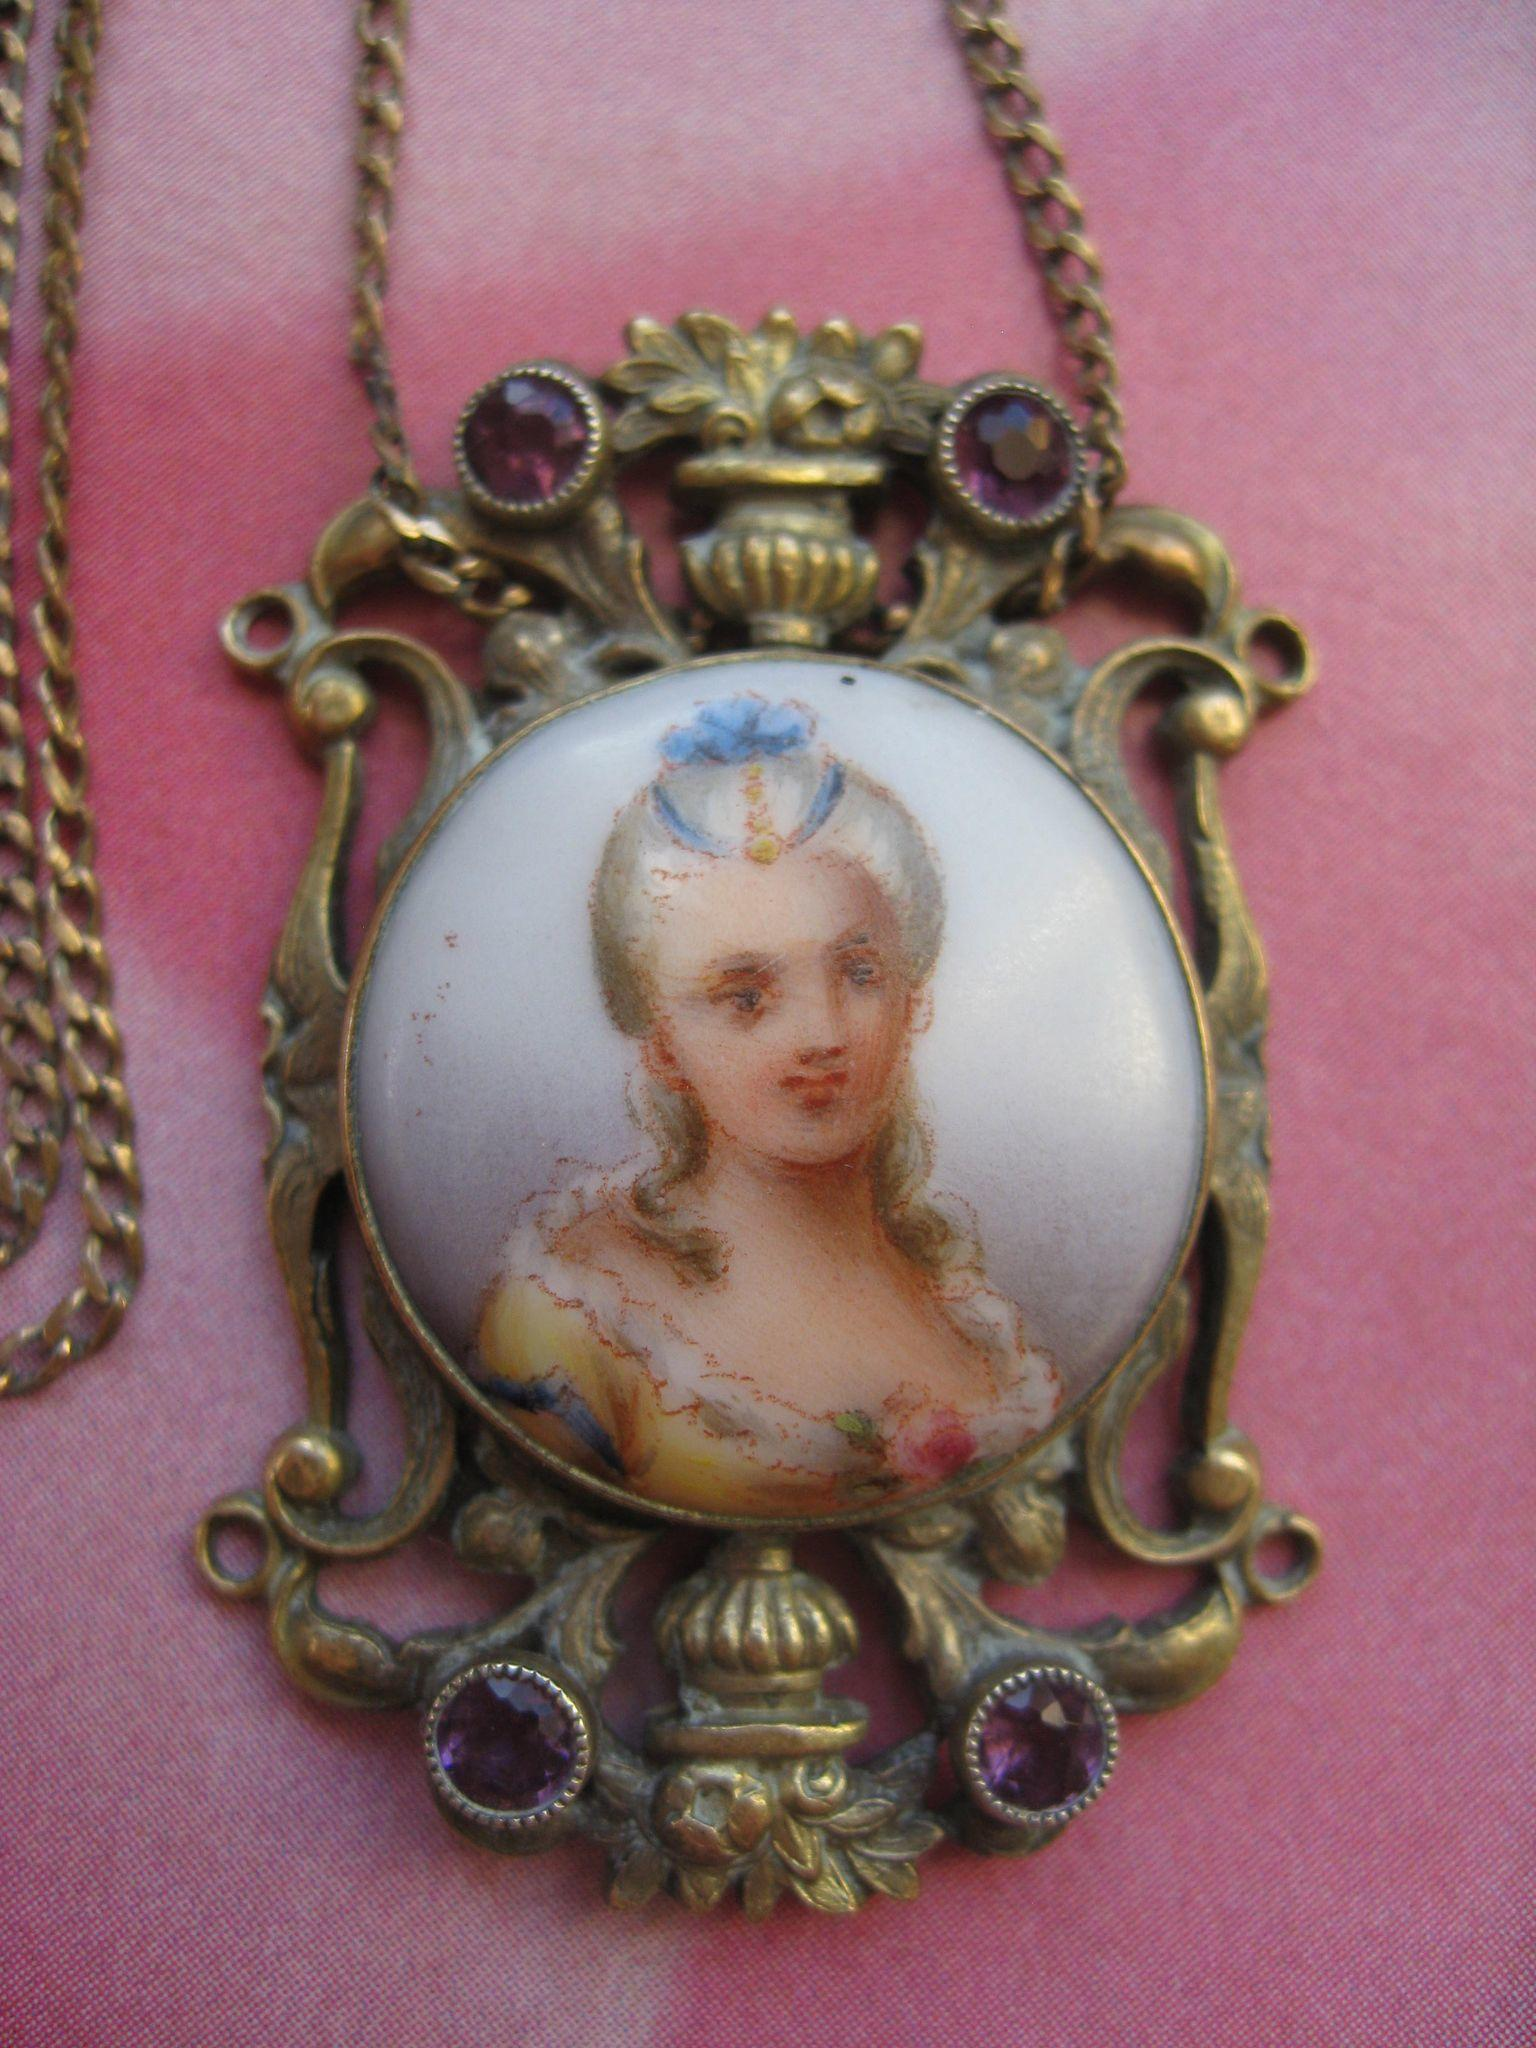 Antique Porcelain Portrait Necklace From Inspiredbynanny